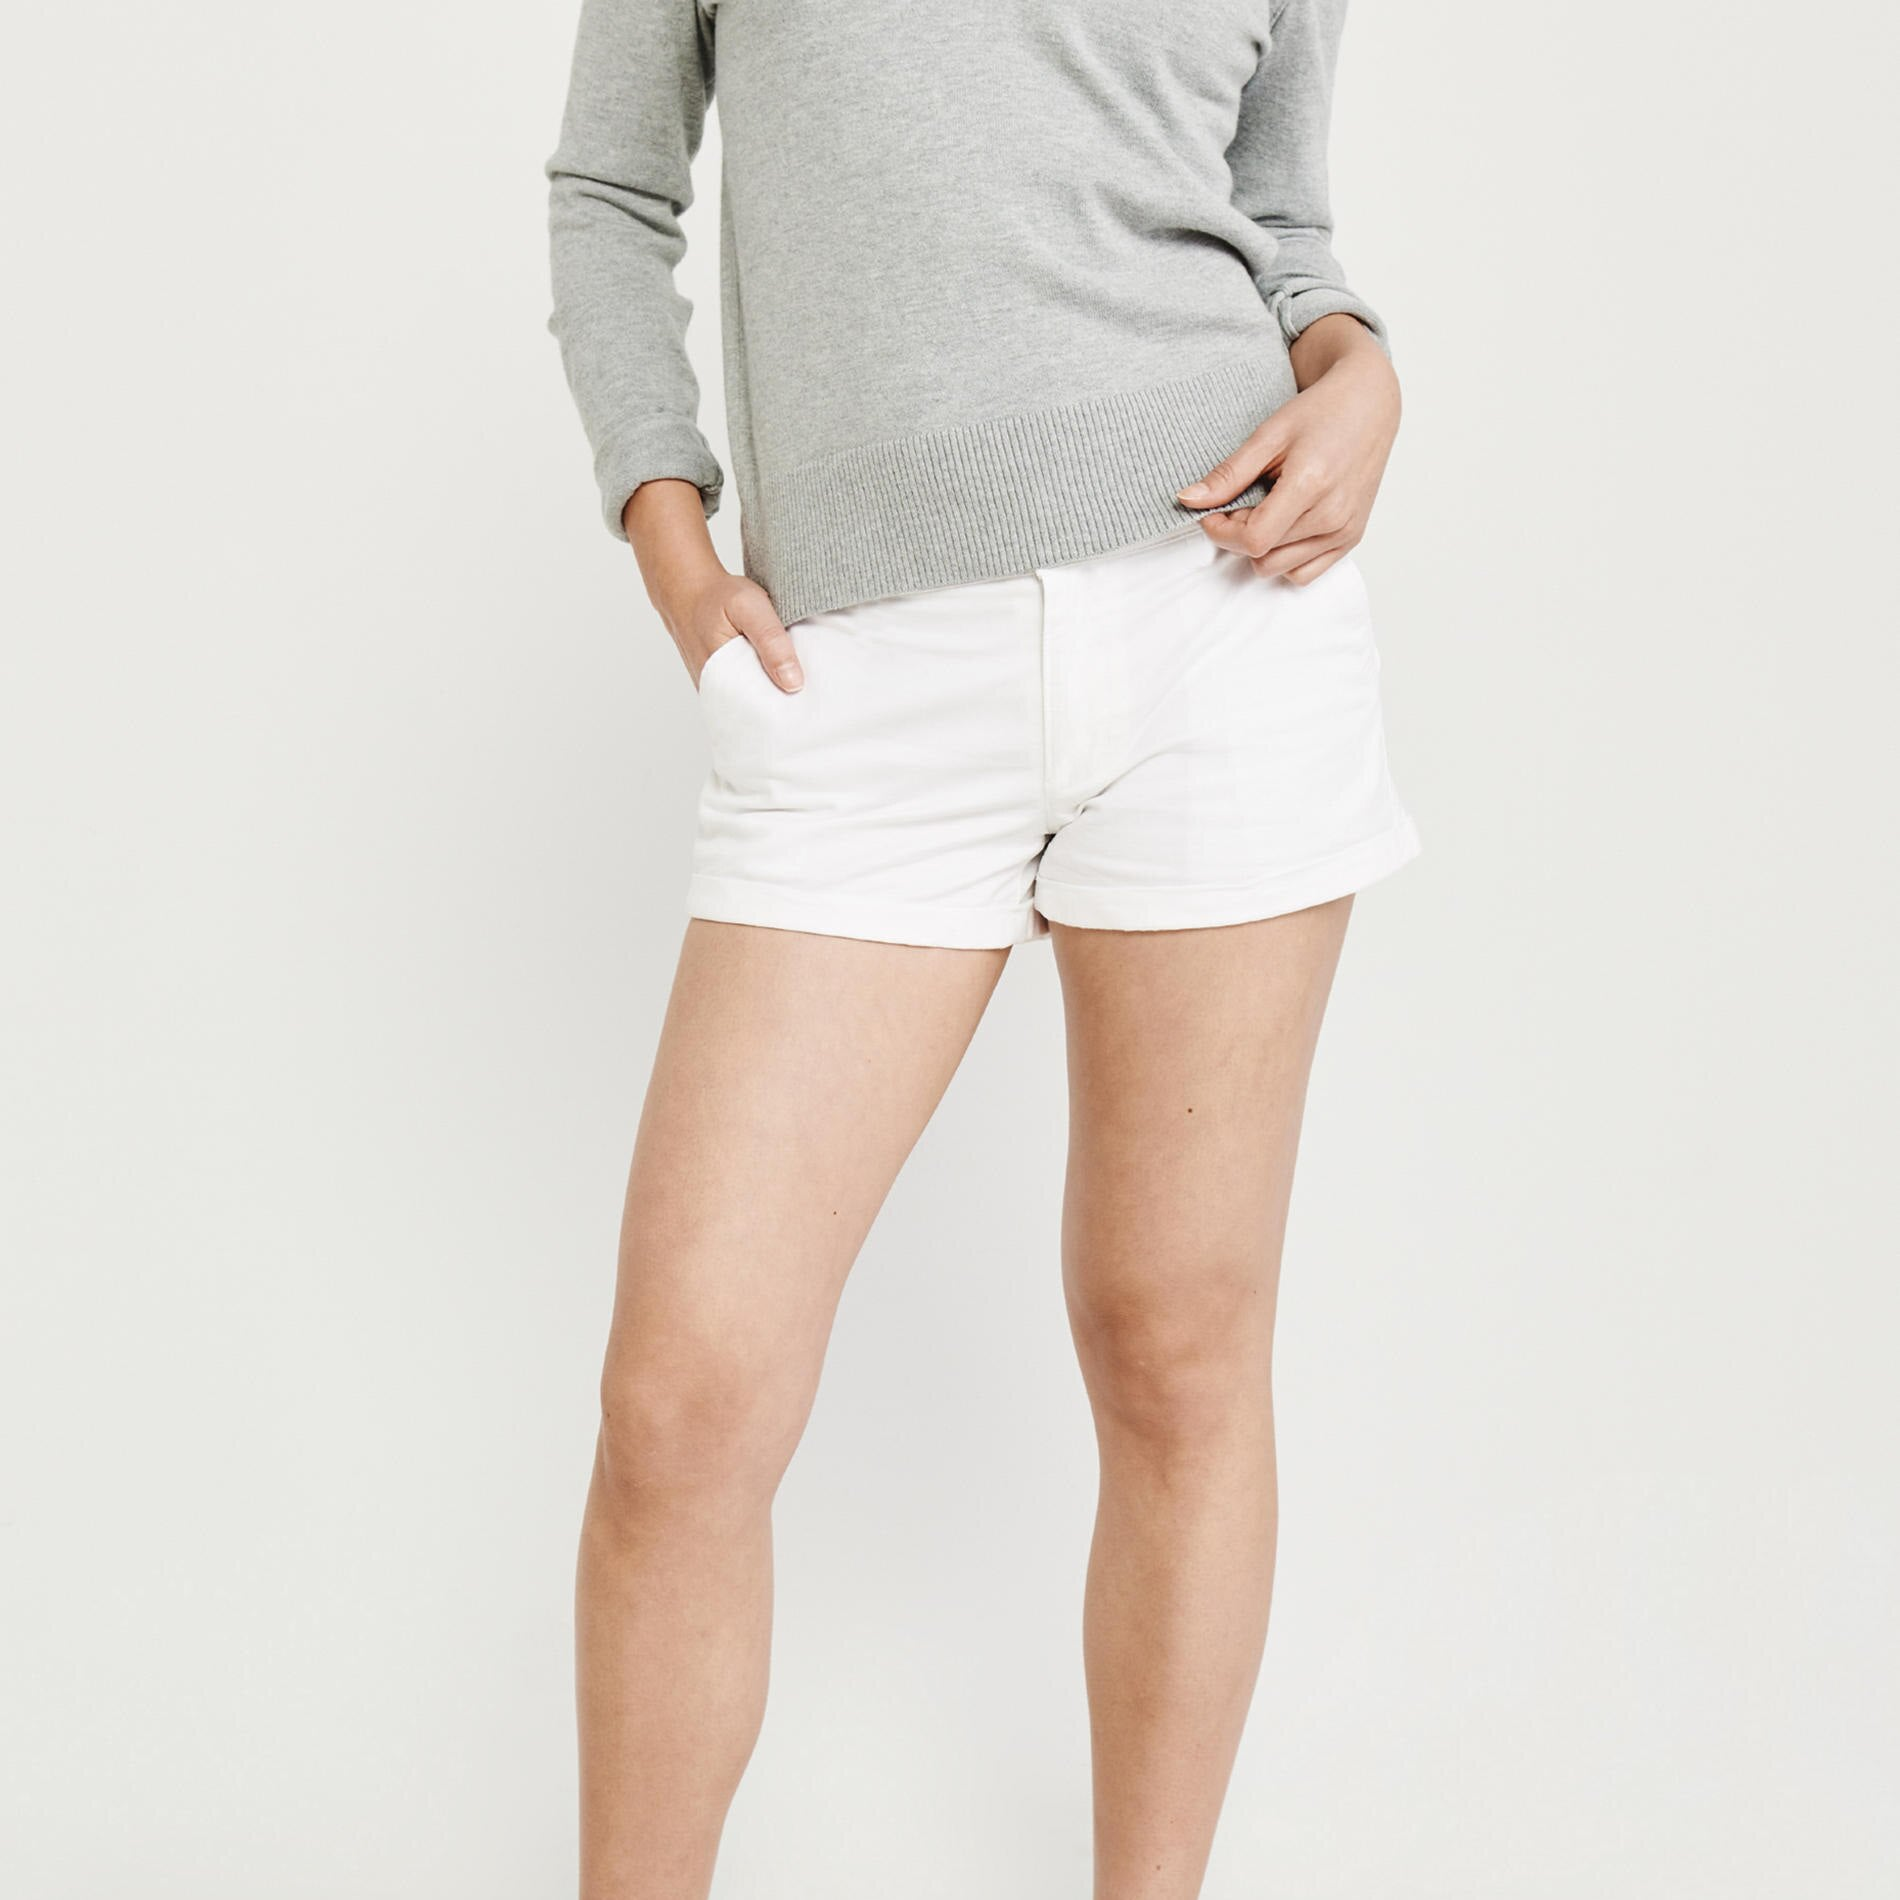 Unit Single Jersey Short For Ladies-White-NA8796